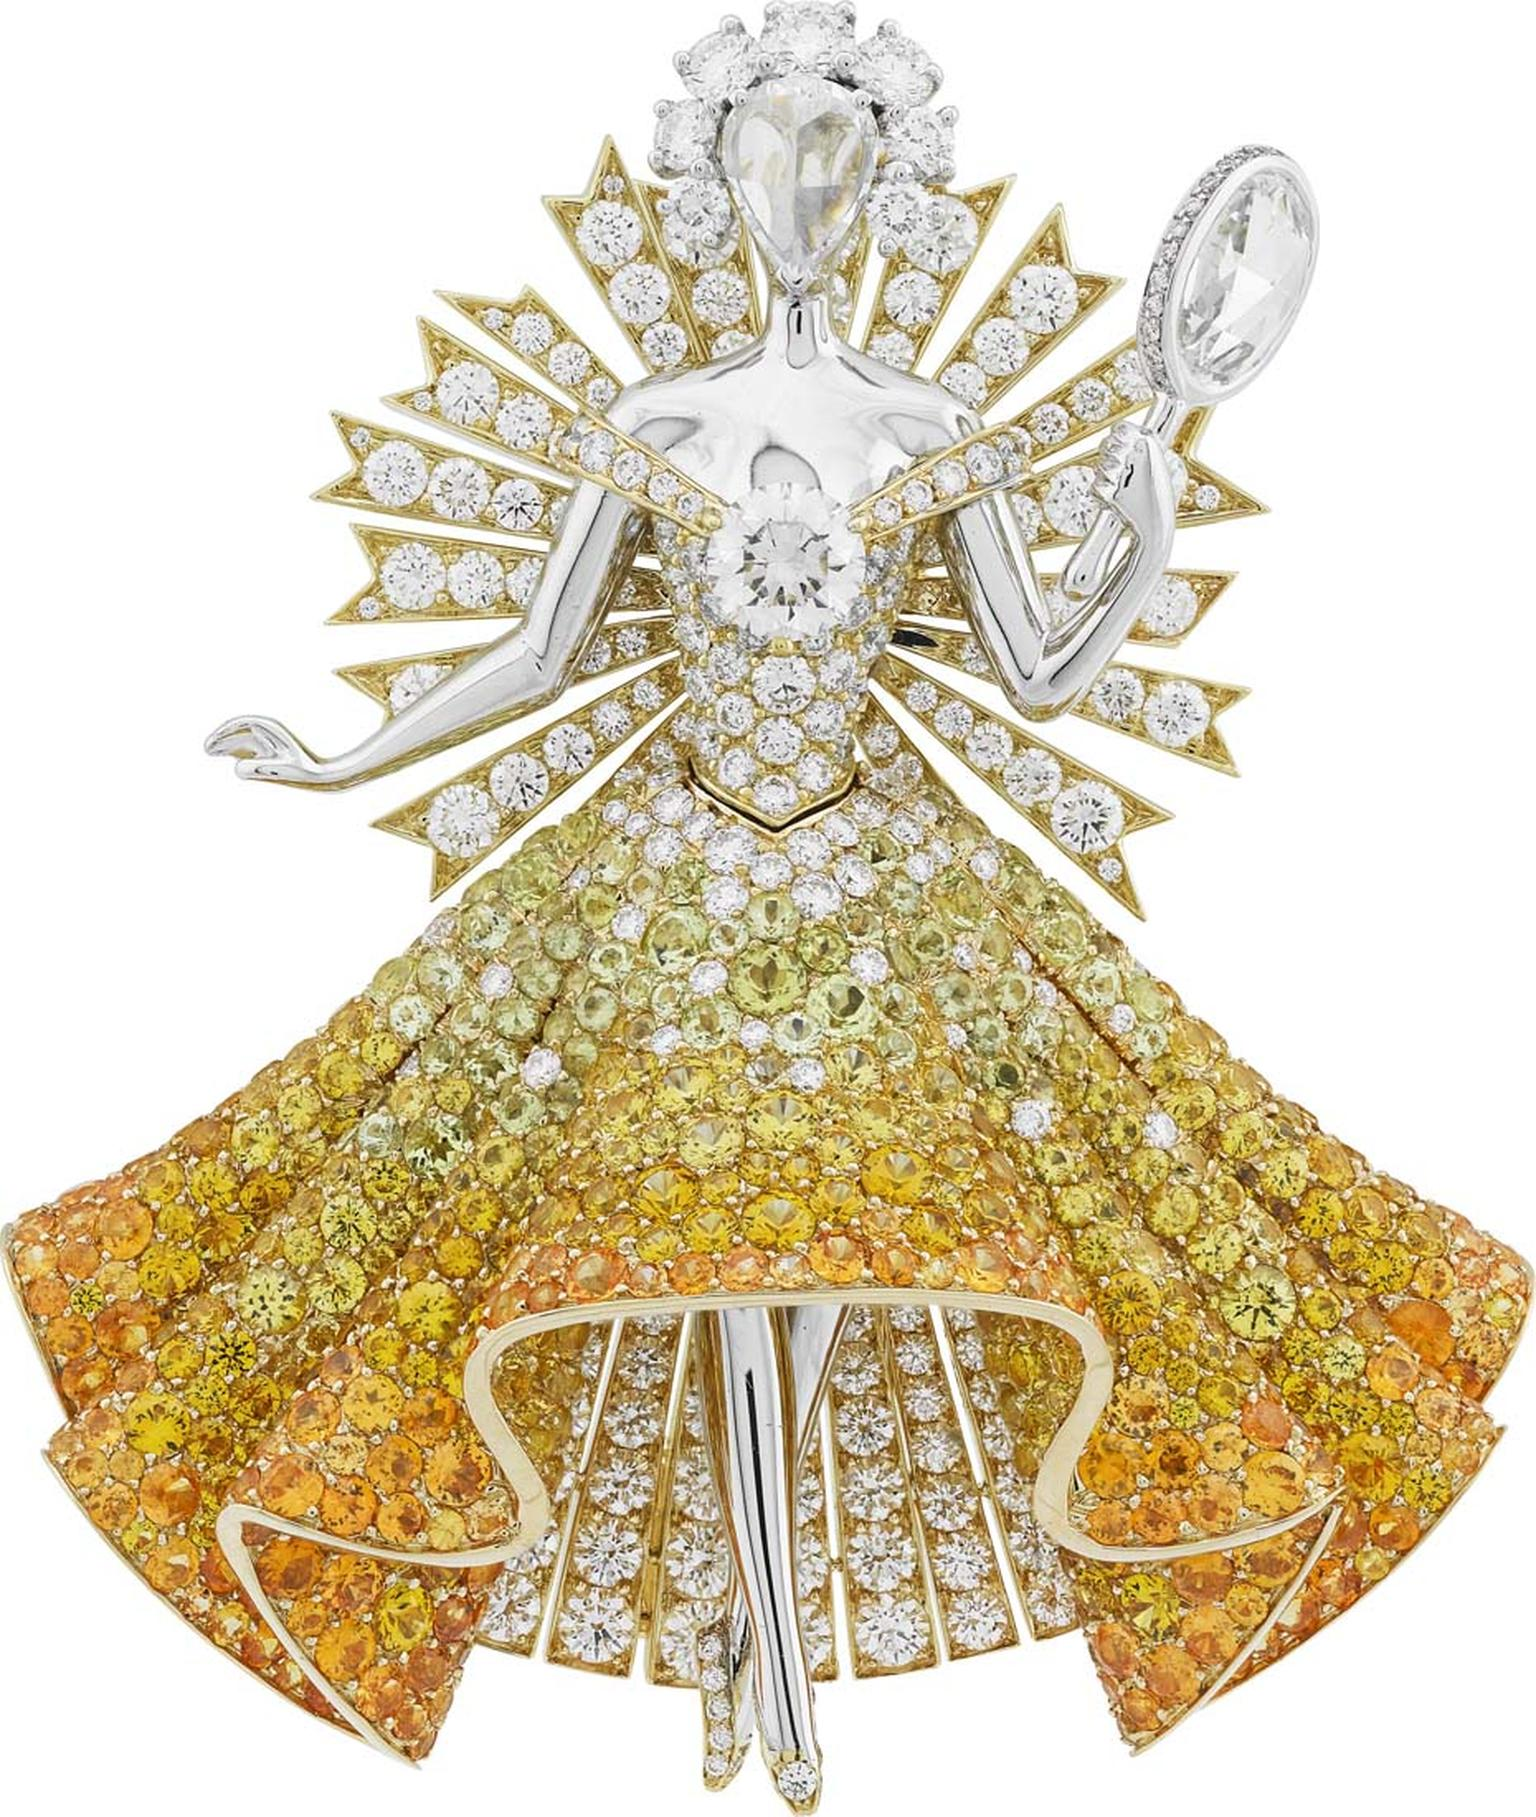 Van Cleef & Arpels Peau d'Âne collection white and yellow gold Sun Dress brooch with white and yellow diamonds, spessartite garnets, tourmalines and yellow sapphires.